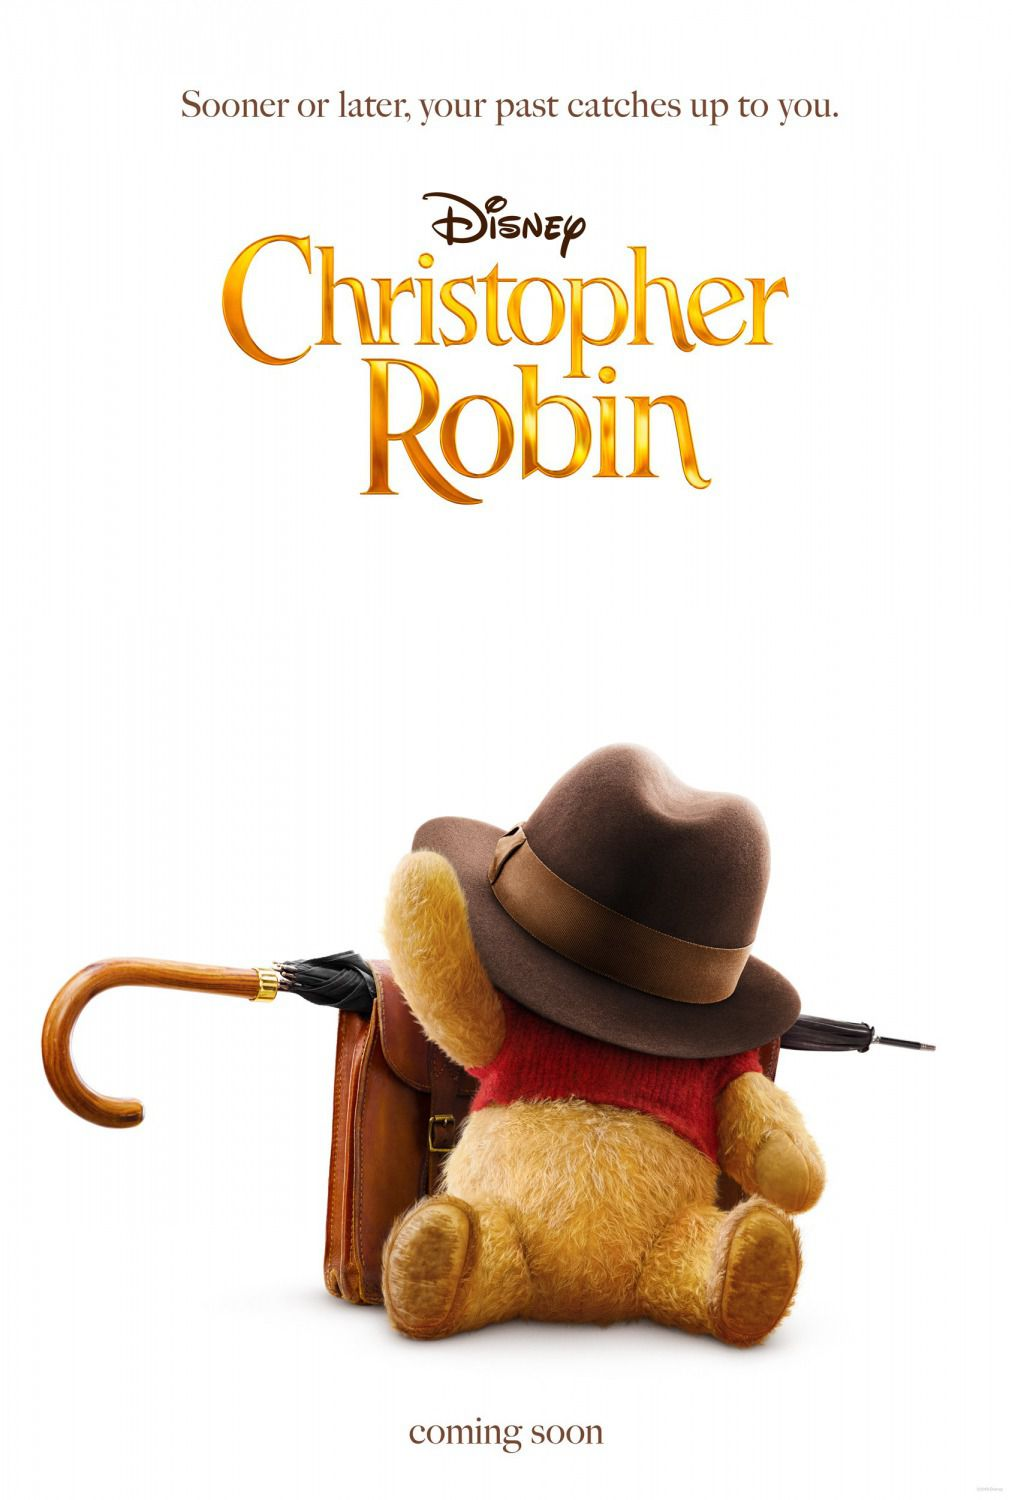 Christopher Robin (2018) - Pooh, umbrella, bag and big hat